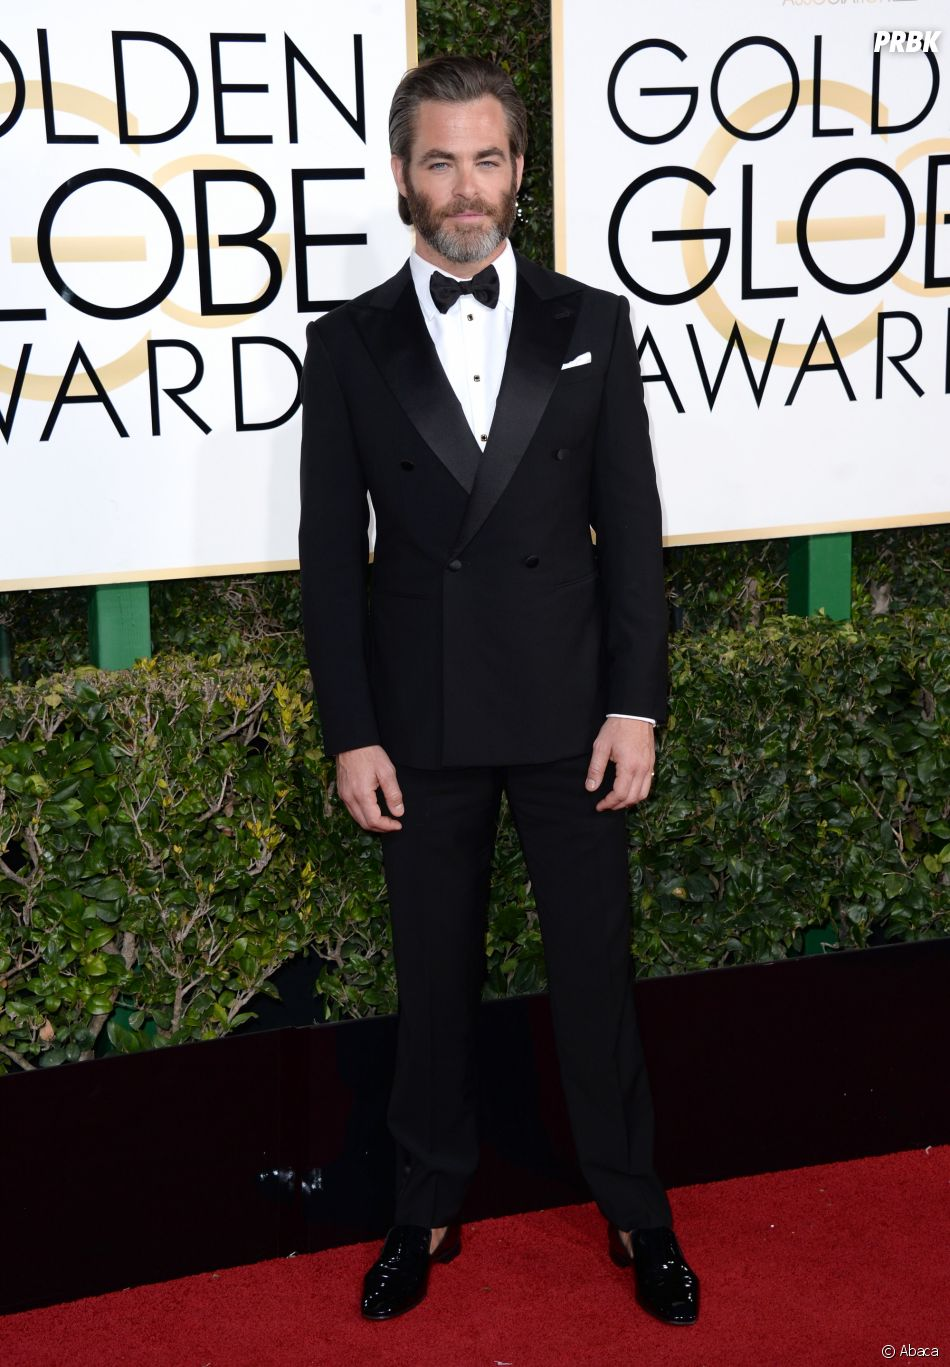 Chris Pine sur le tapis-rouge des Golden Globes 2017 le 8 janvier à Los Angeles